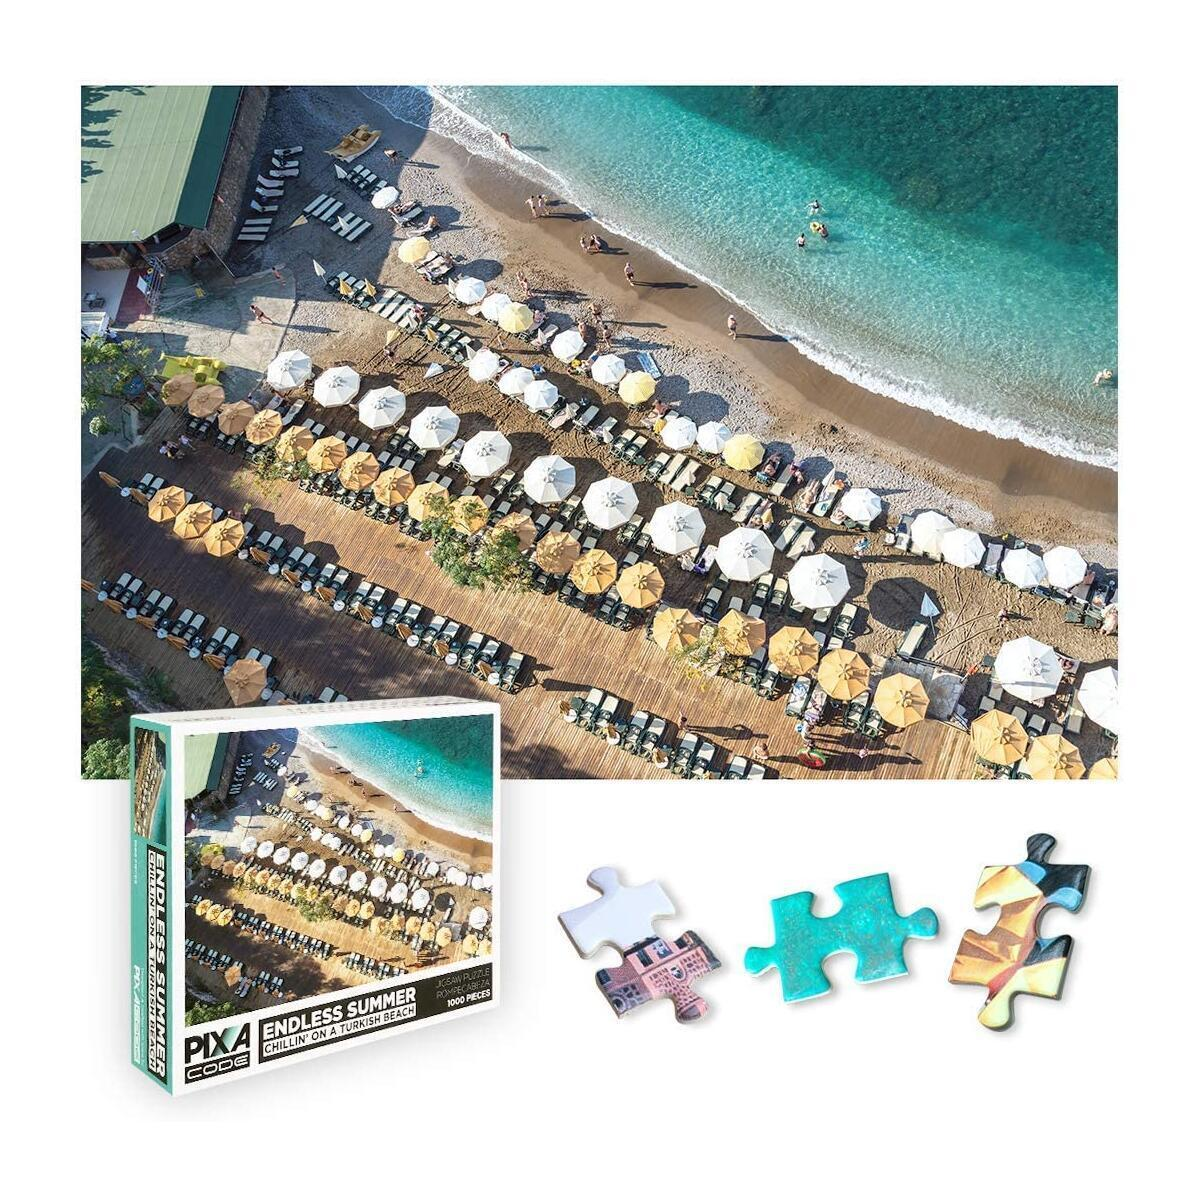 1000 Piece Puzzle for Adults - Endless Summer Beach Pictures Puzzles Collection by PixaCode for Adult Kids and Friends Perfect for Game Night and Wall Decor